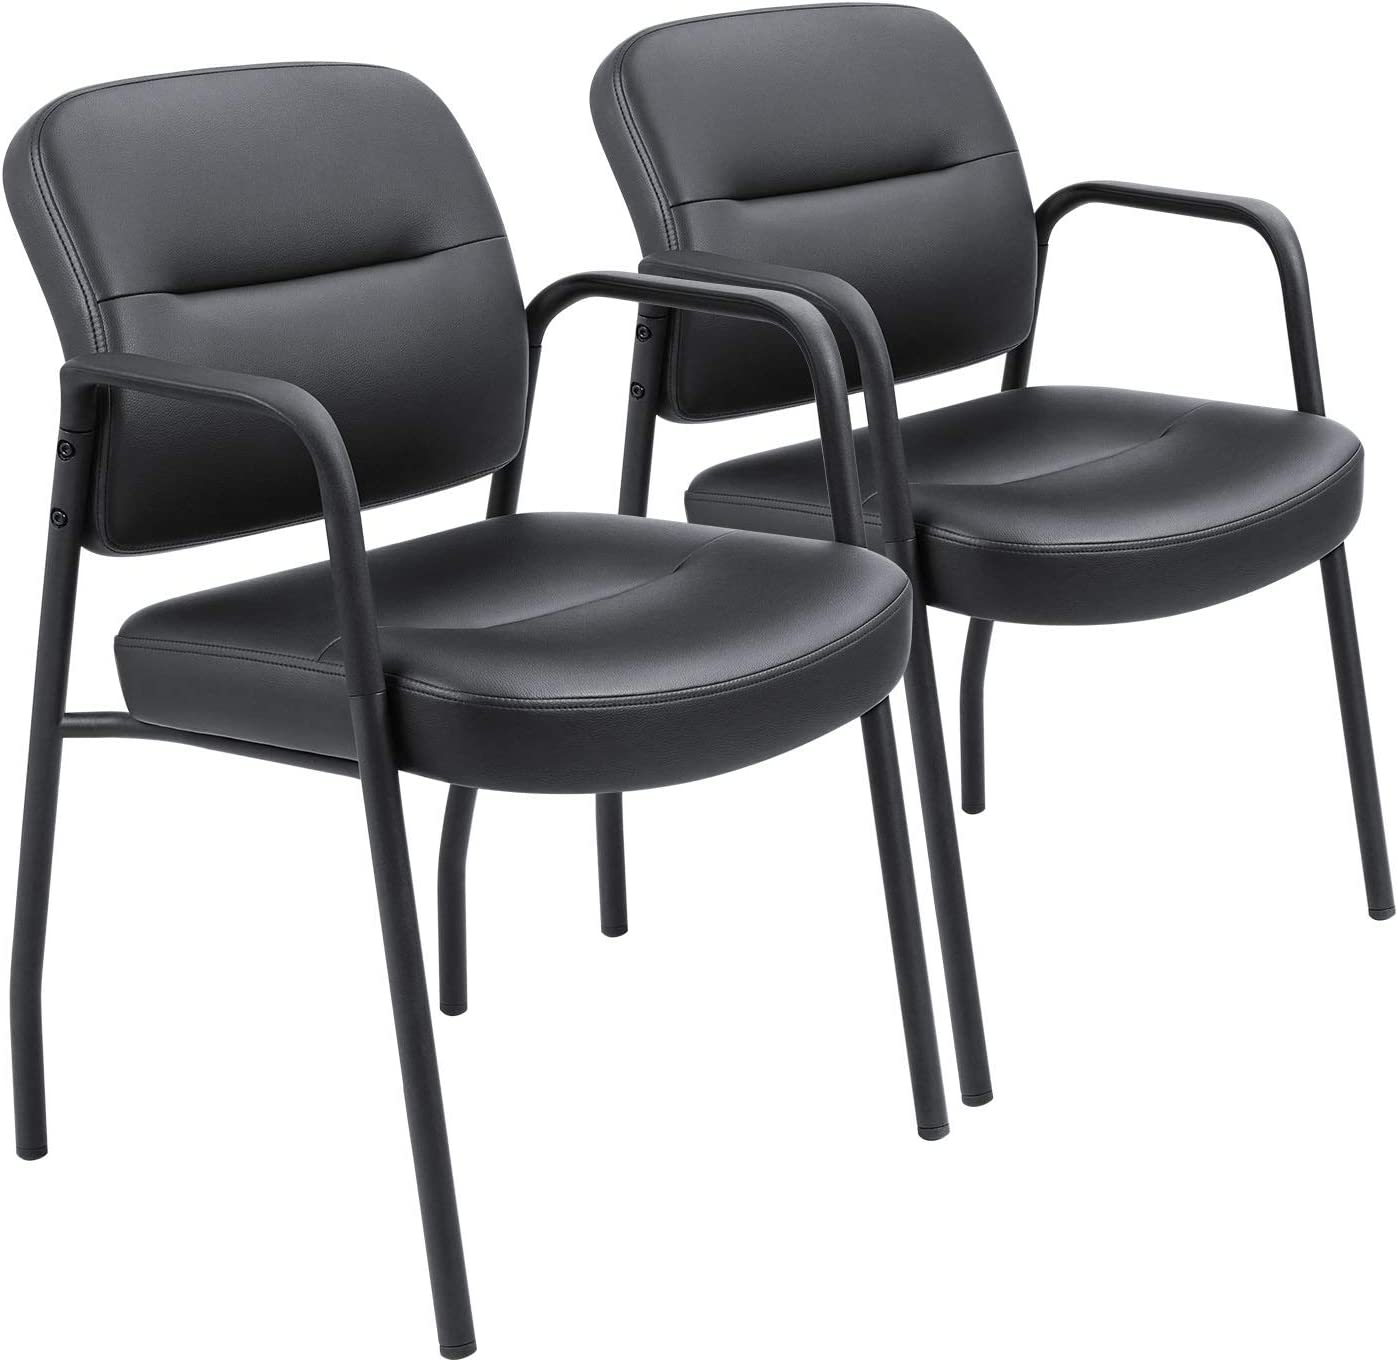 Devoko Office Reception Chairs Executive Leather Guest Chairs with Armrest  Ergonomic Upholstered Lumber Support Side Chairs Set of 5 (Black)